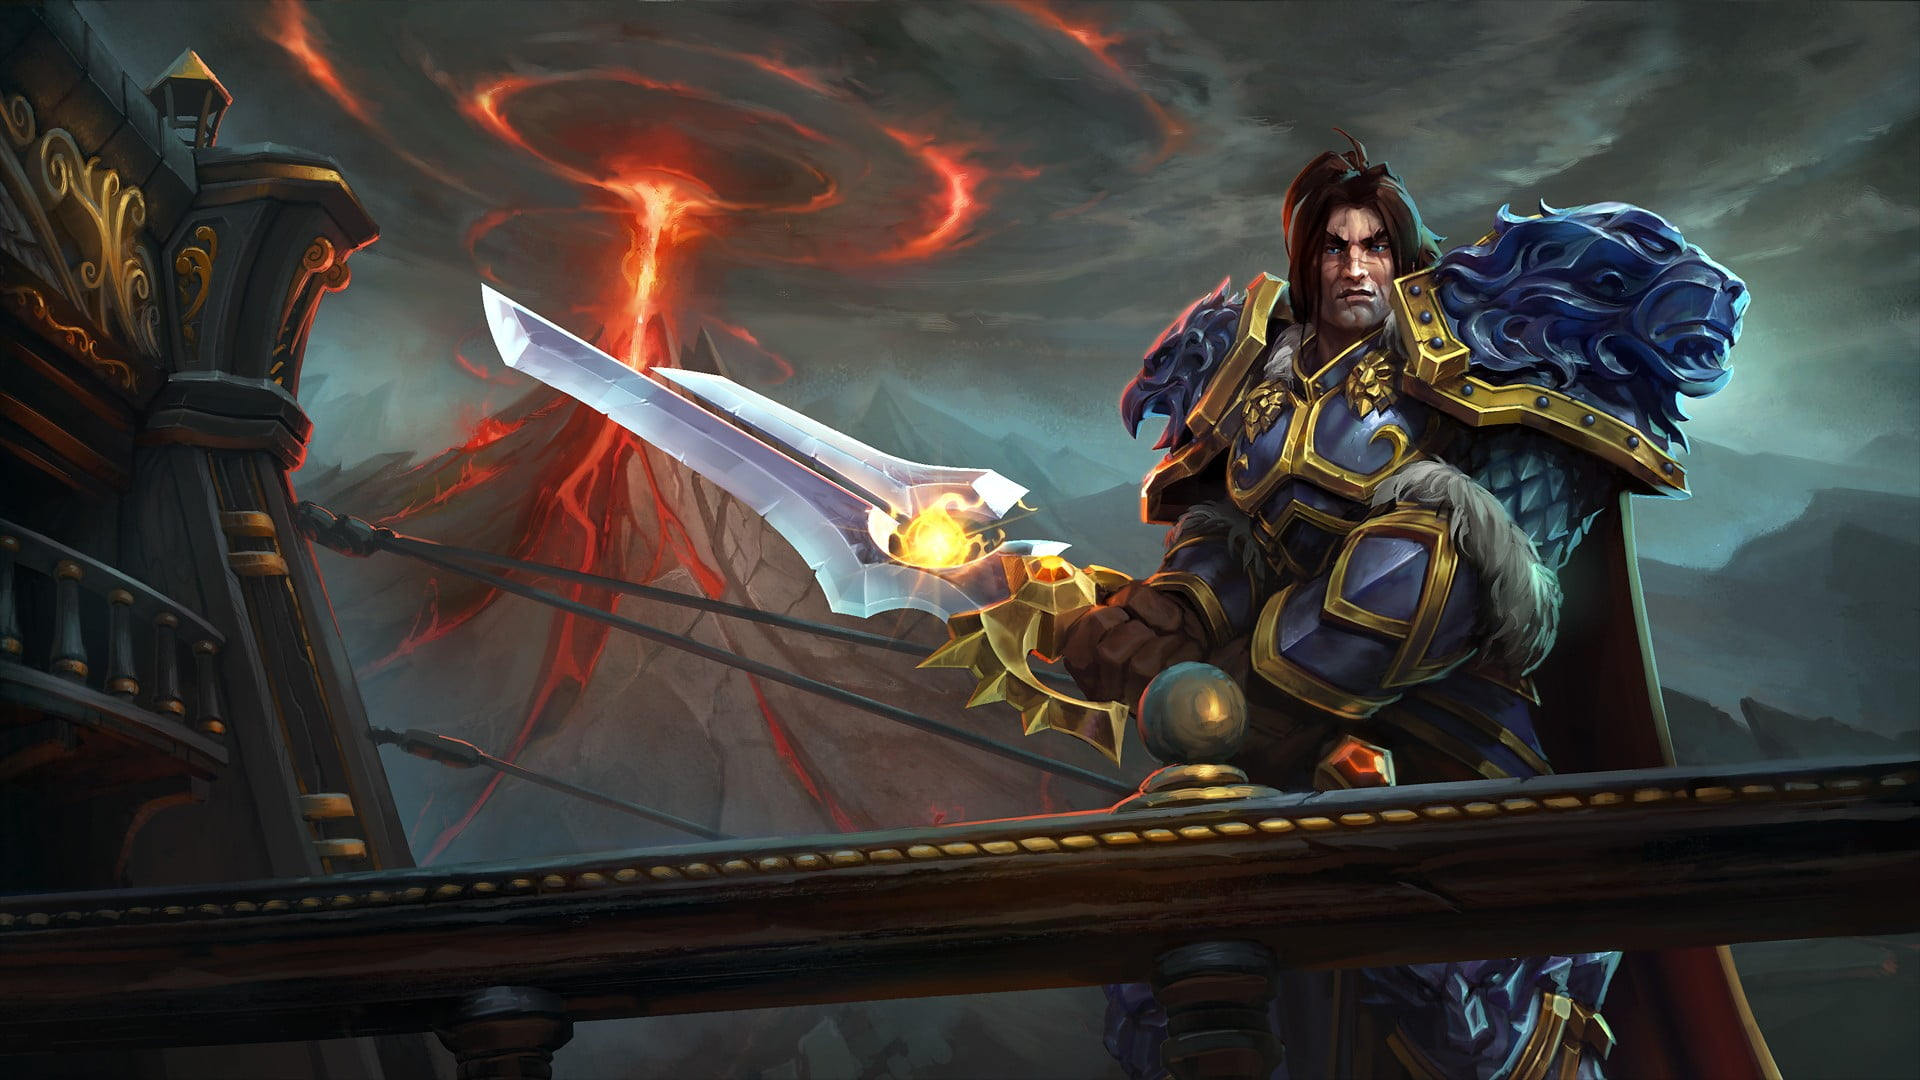 Mobile Legend Tigreal screengrab heroes of the storm King Varian 1920x1080